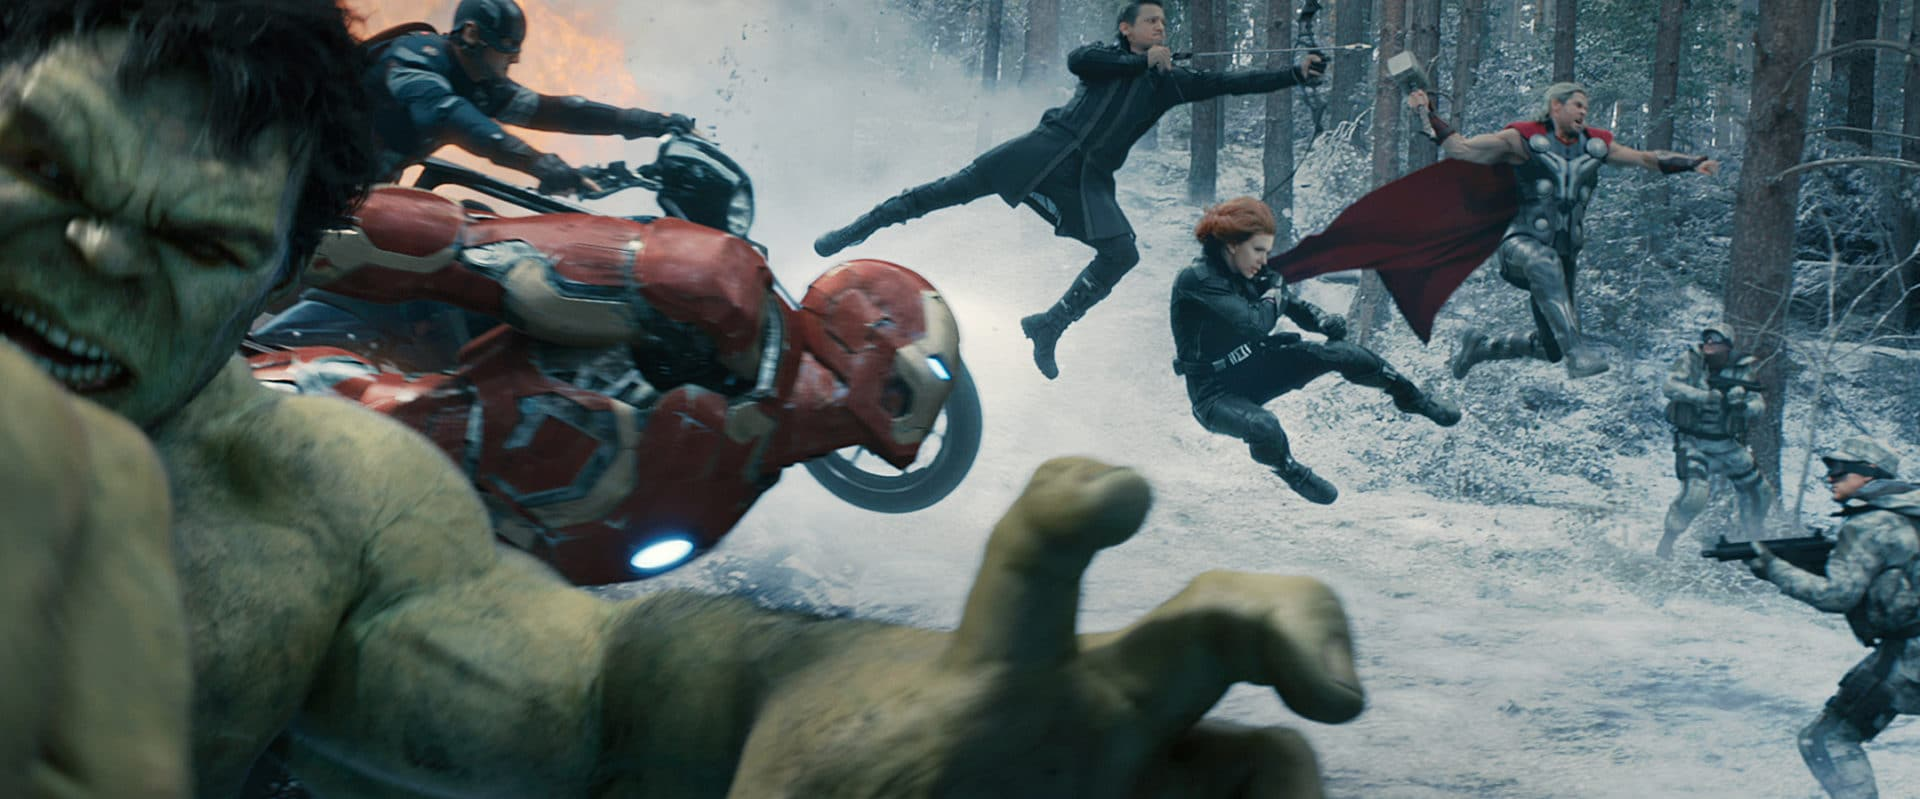 avengers-age-of-ultron-team-shot1 10 years of Marvel's visual effects - Part 2 Articles News